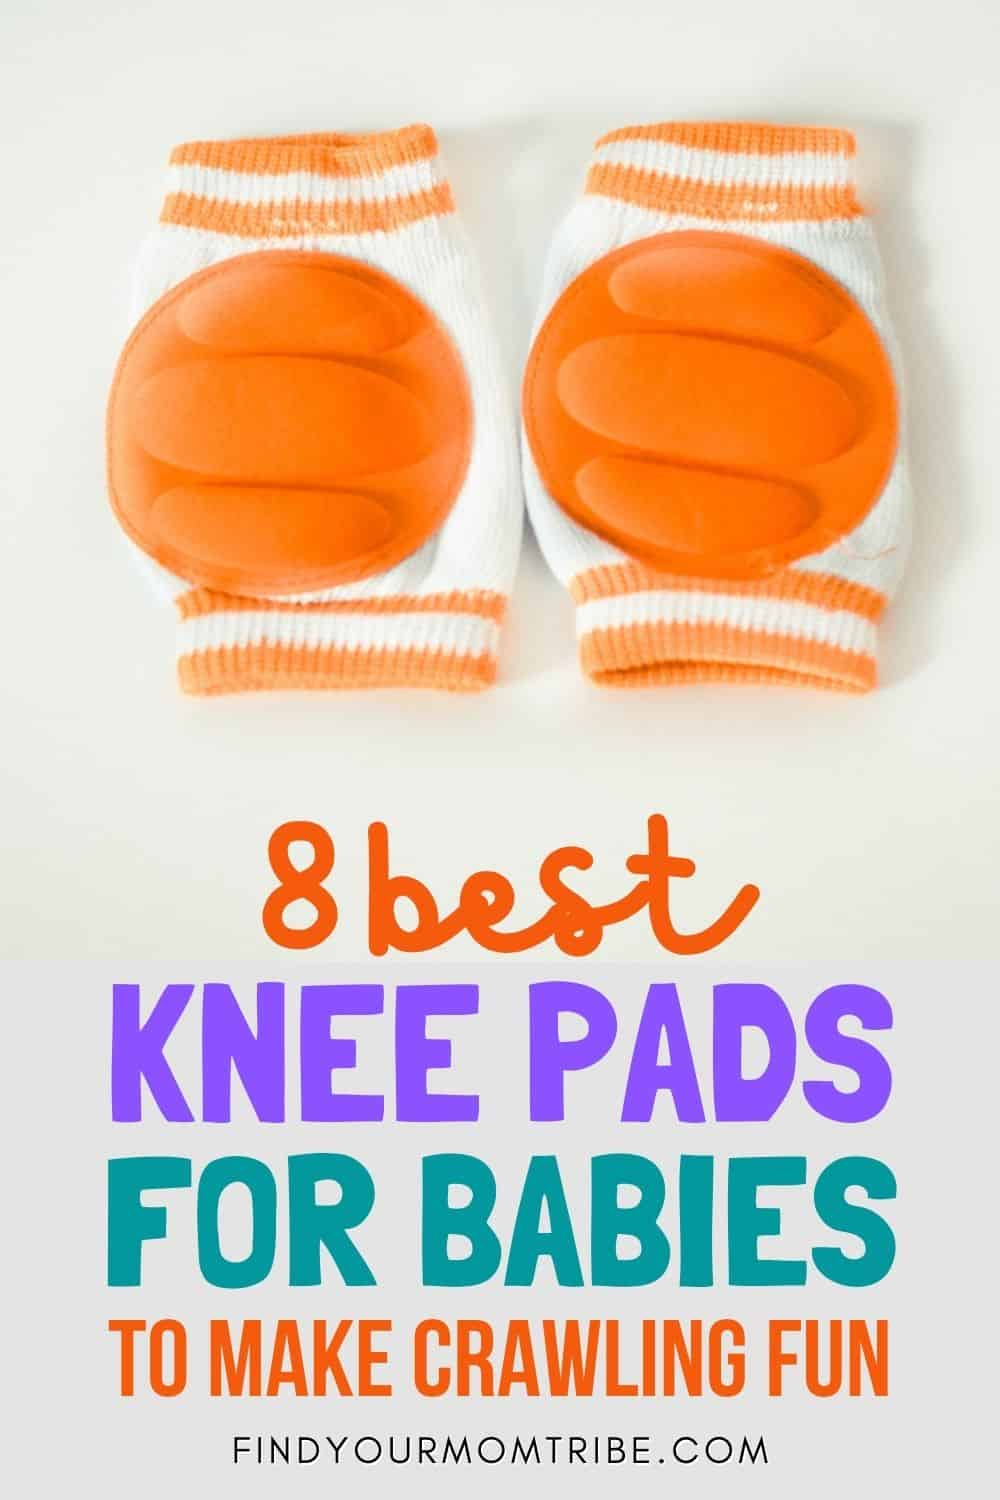 8 Best Knee Pads For Babies To Make Crawling Fun Pinterest